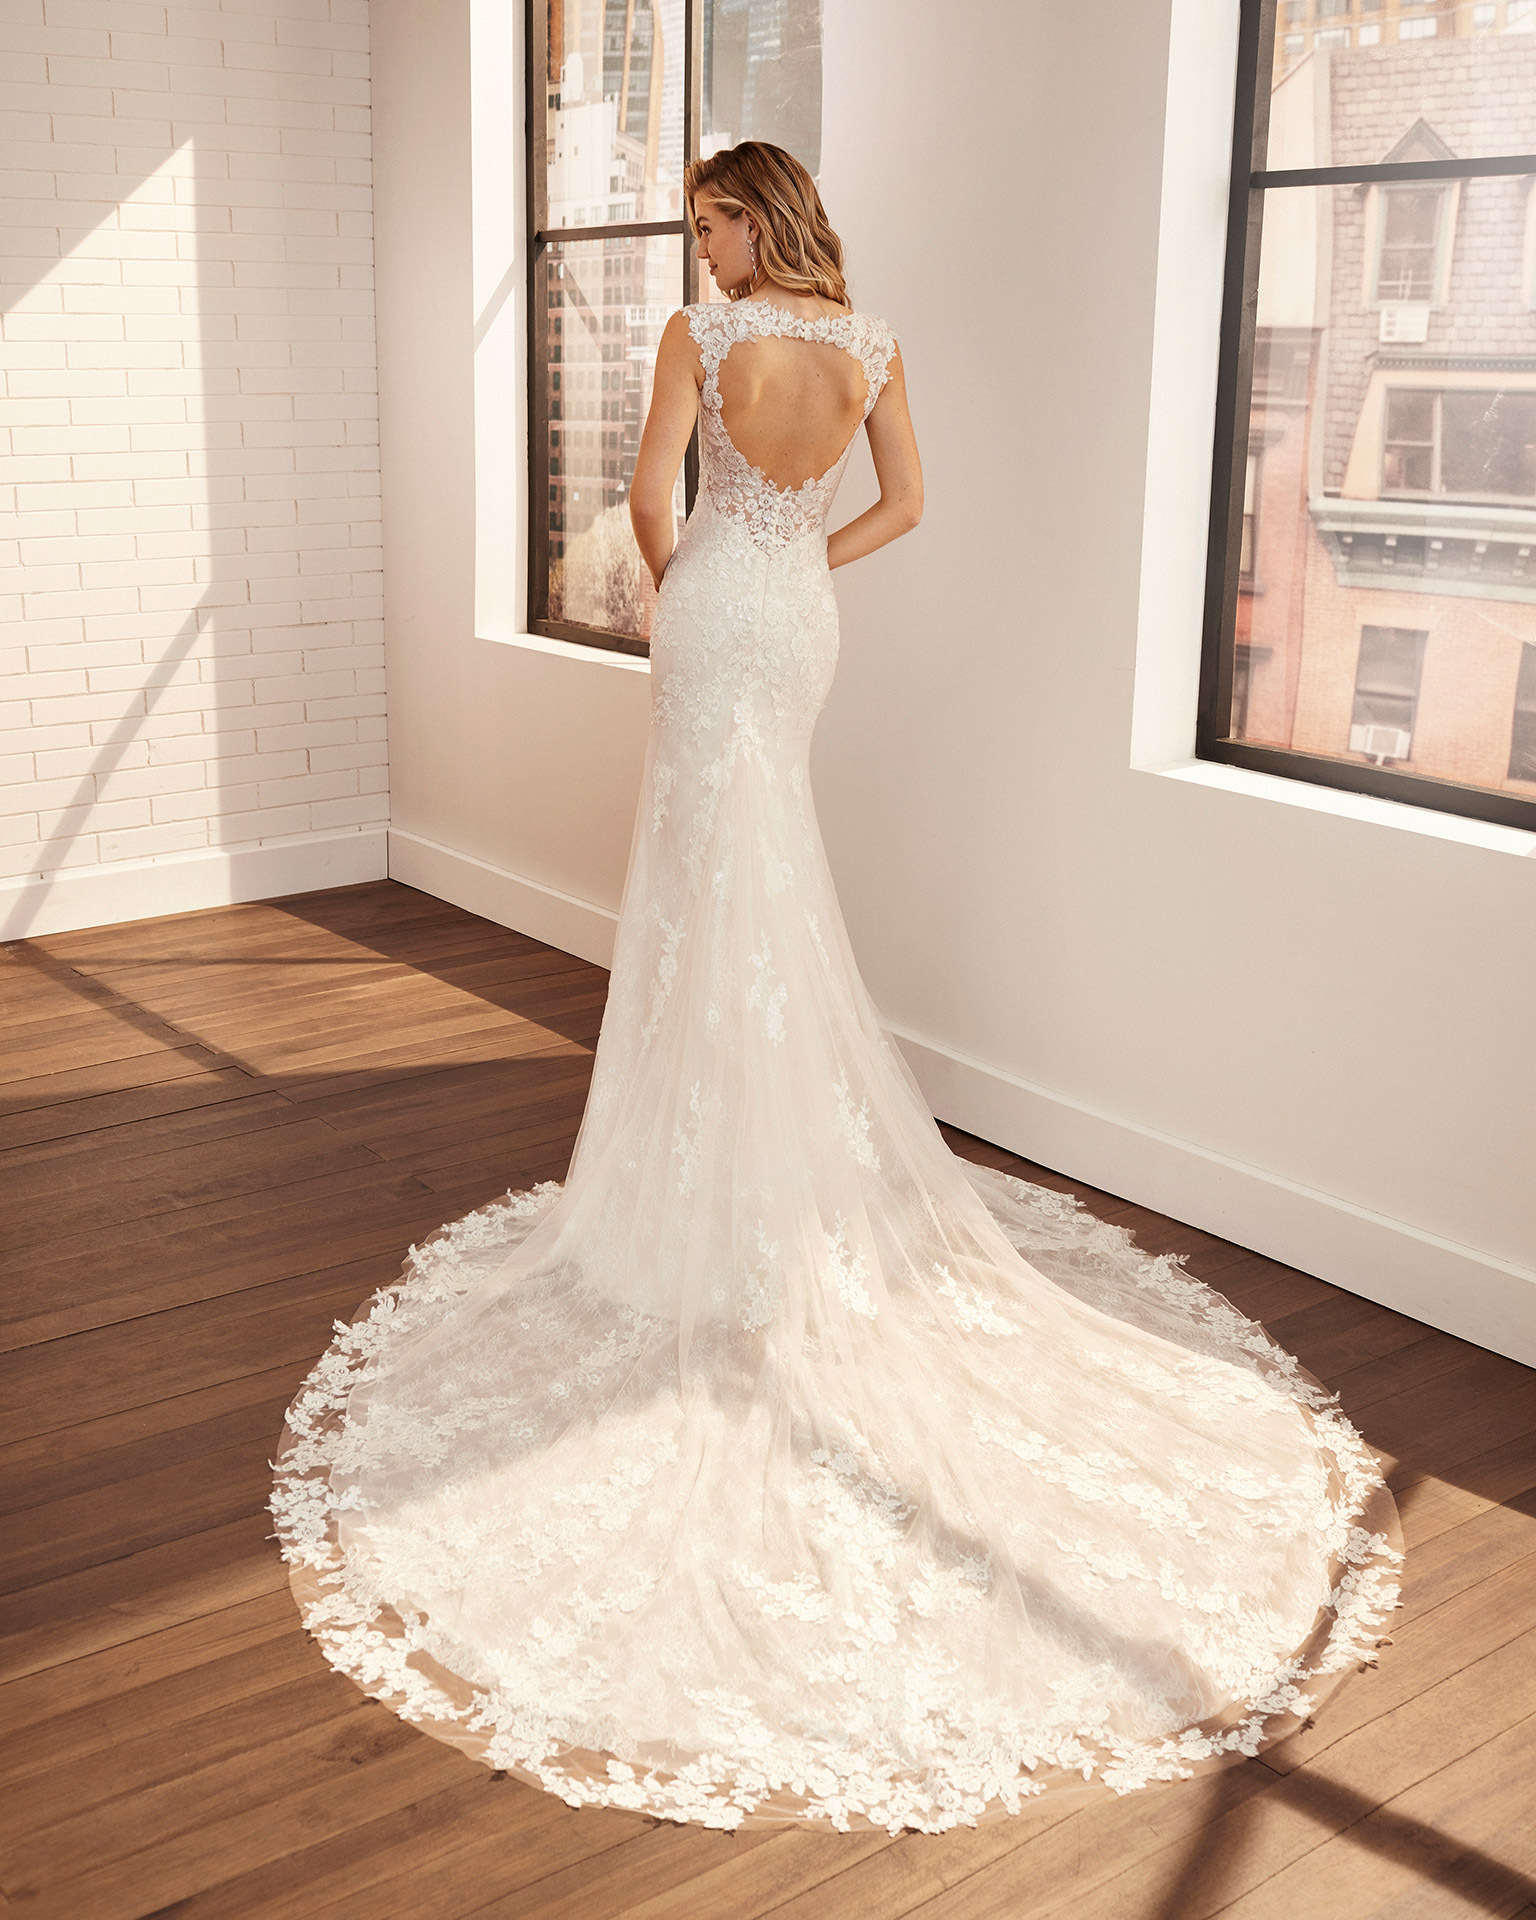 Mermaid-style wedding dress in lace and tulle with beading and illusion back. 2020  Collection.